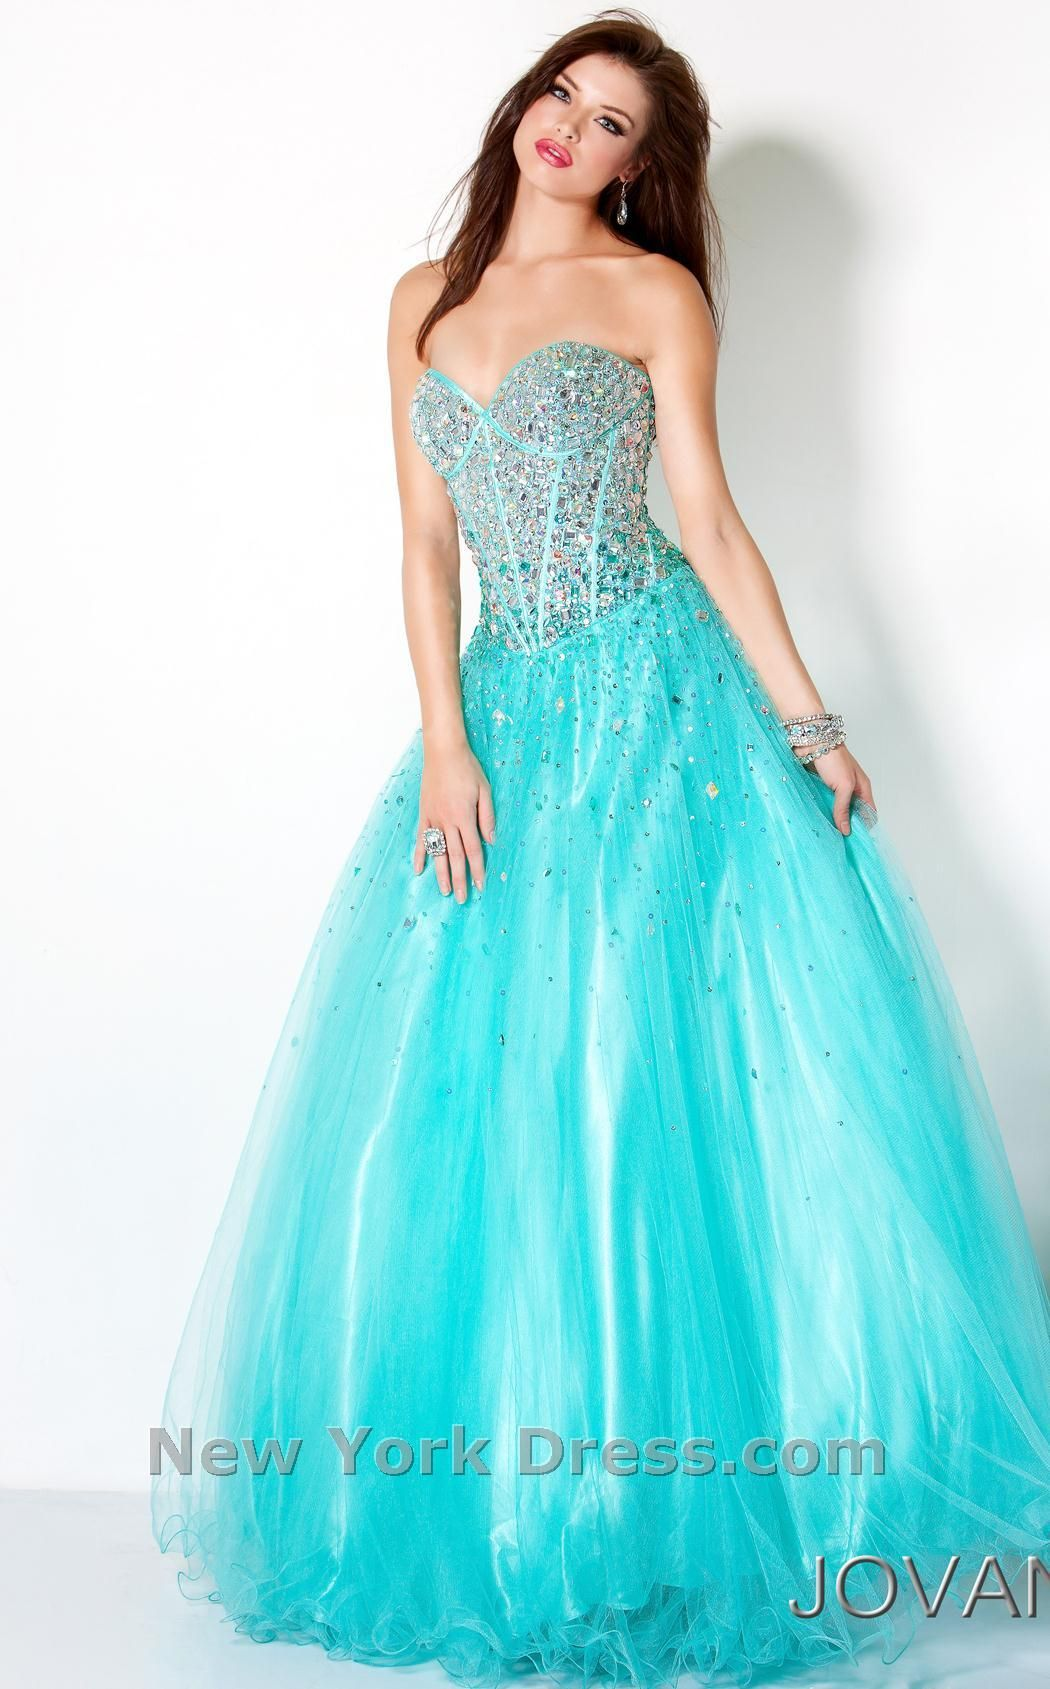 This dress is so awesome! Love EVERYTHING about it except that its ...